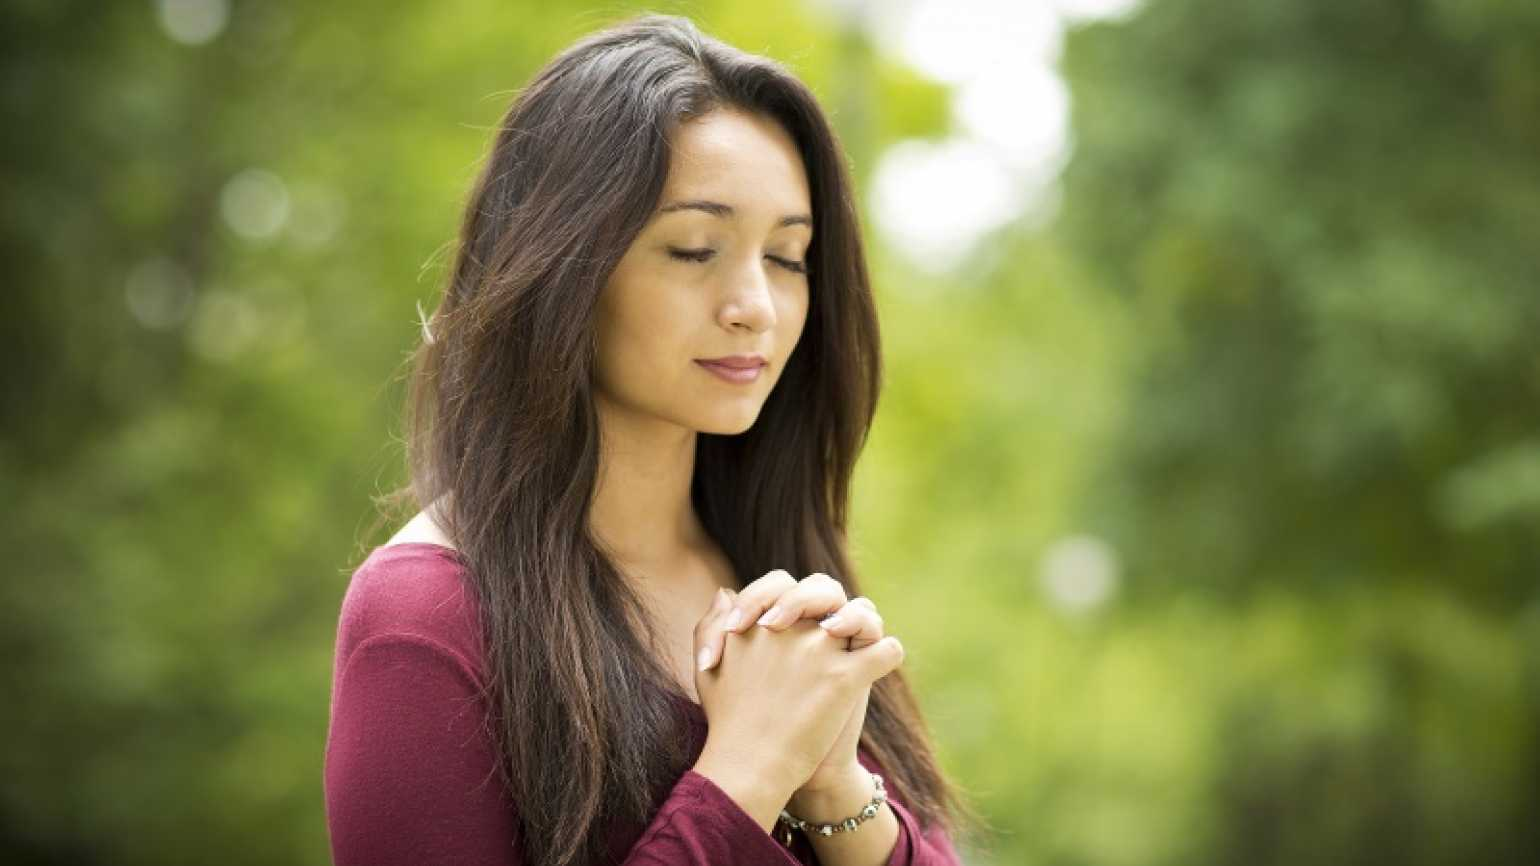 Image result for woman in prayer images